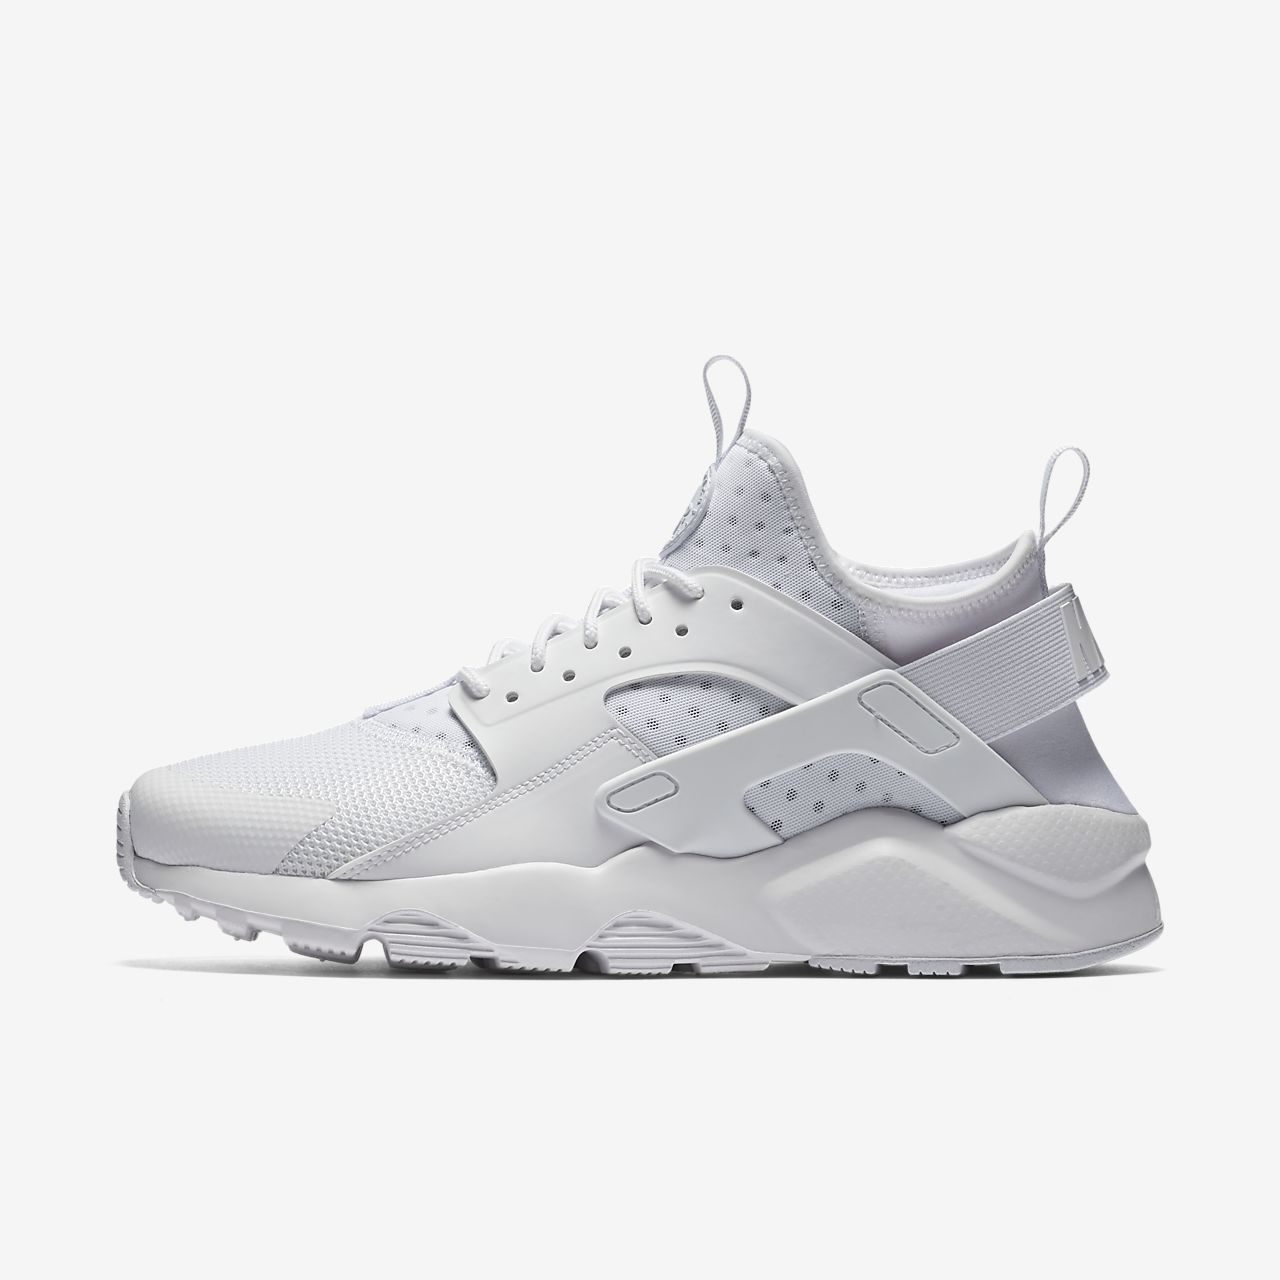 hot sale online e2d6c 79438 ... Nike Air Huarache Ultra Men s Shoe